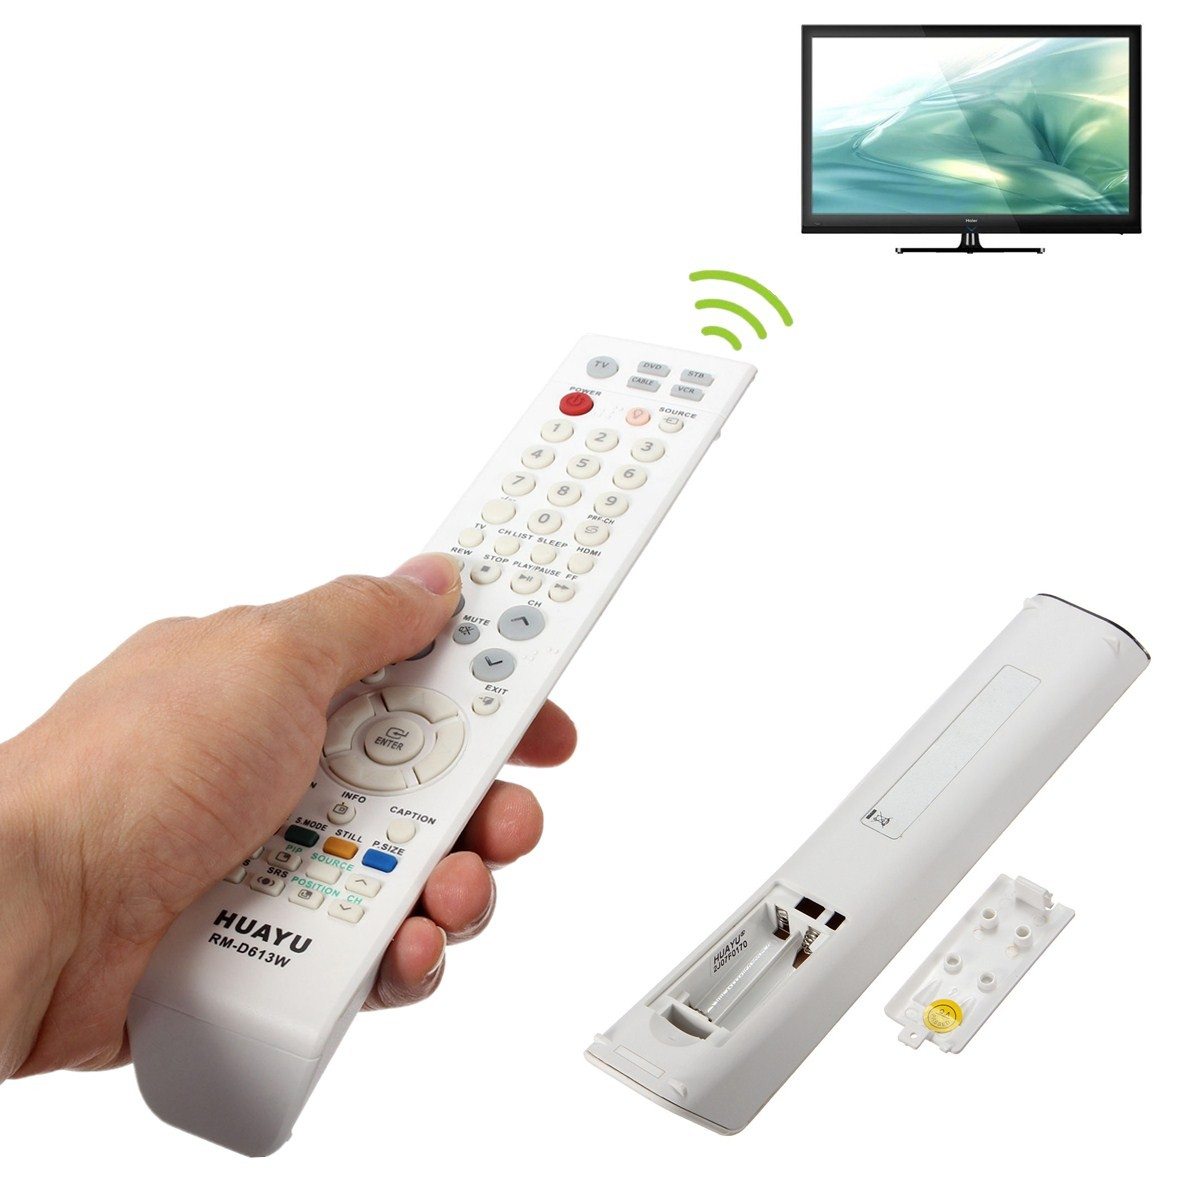 LEORY TV Remote Control Replacement Controller for Samsung BN59 AA59 LED LCD TV DVD VCR samsung un65hu9000 65 tv купить в литве